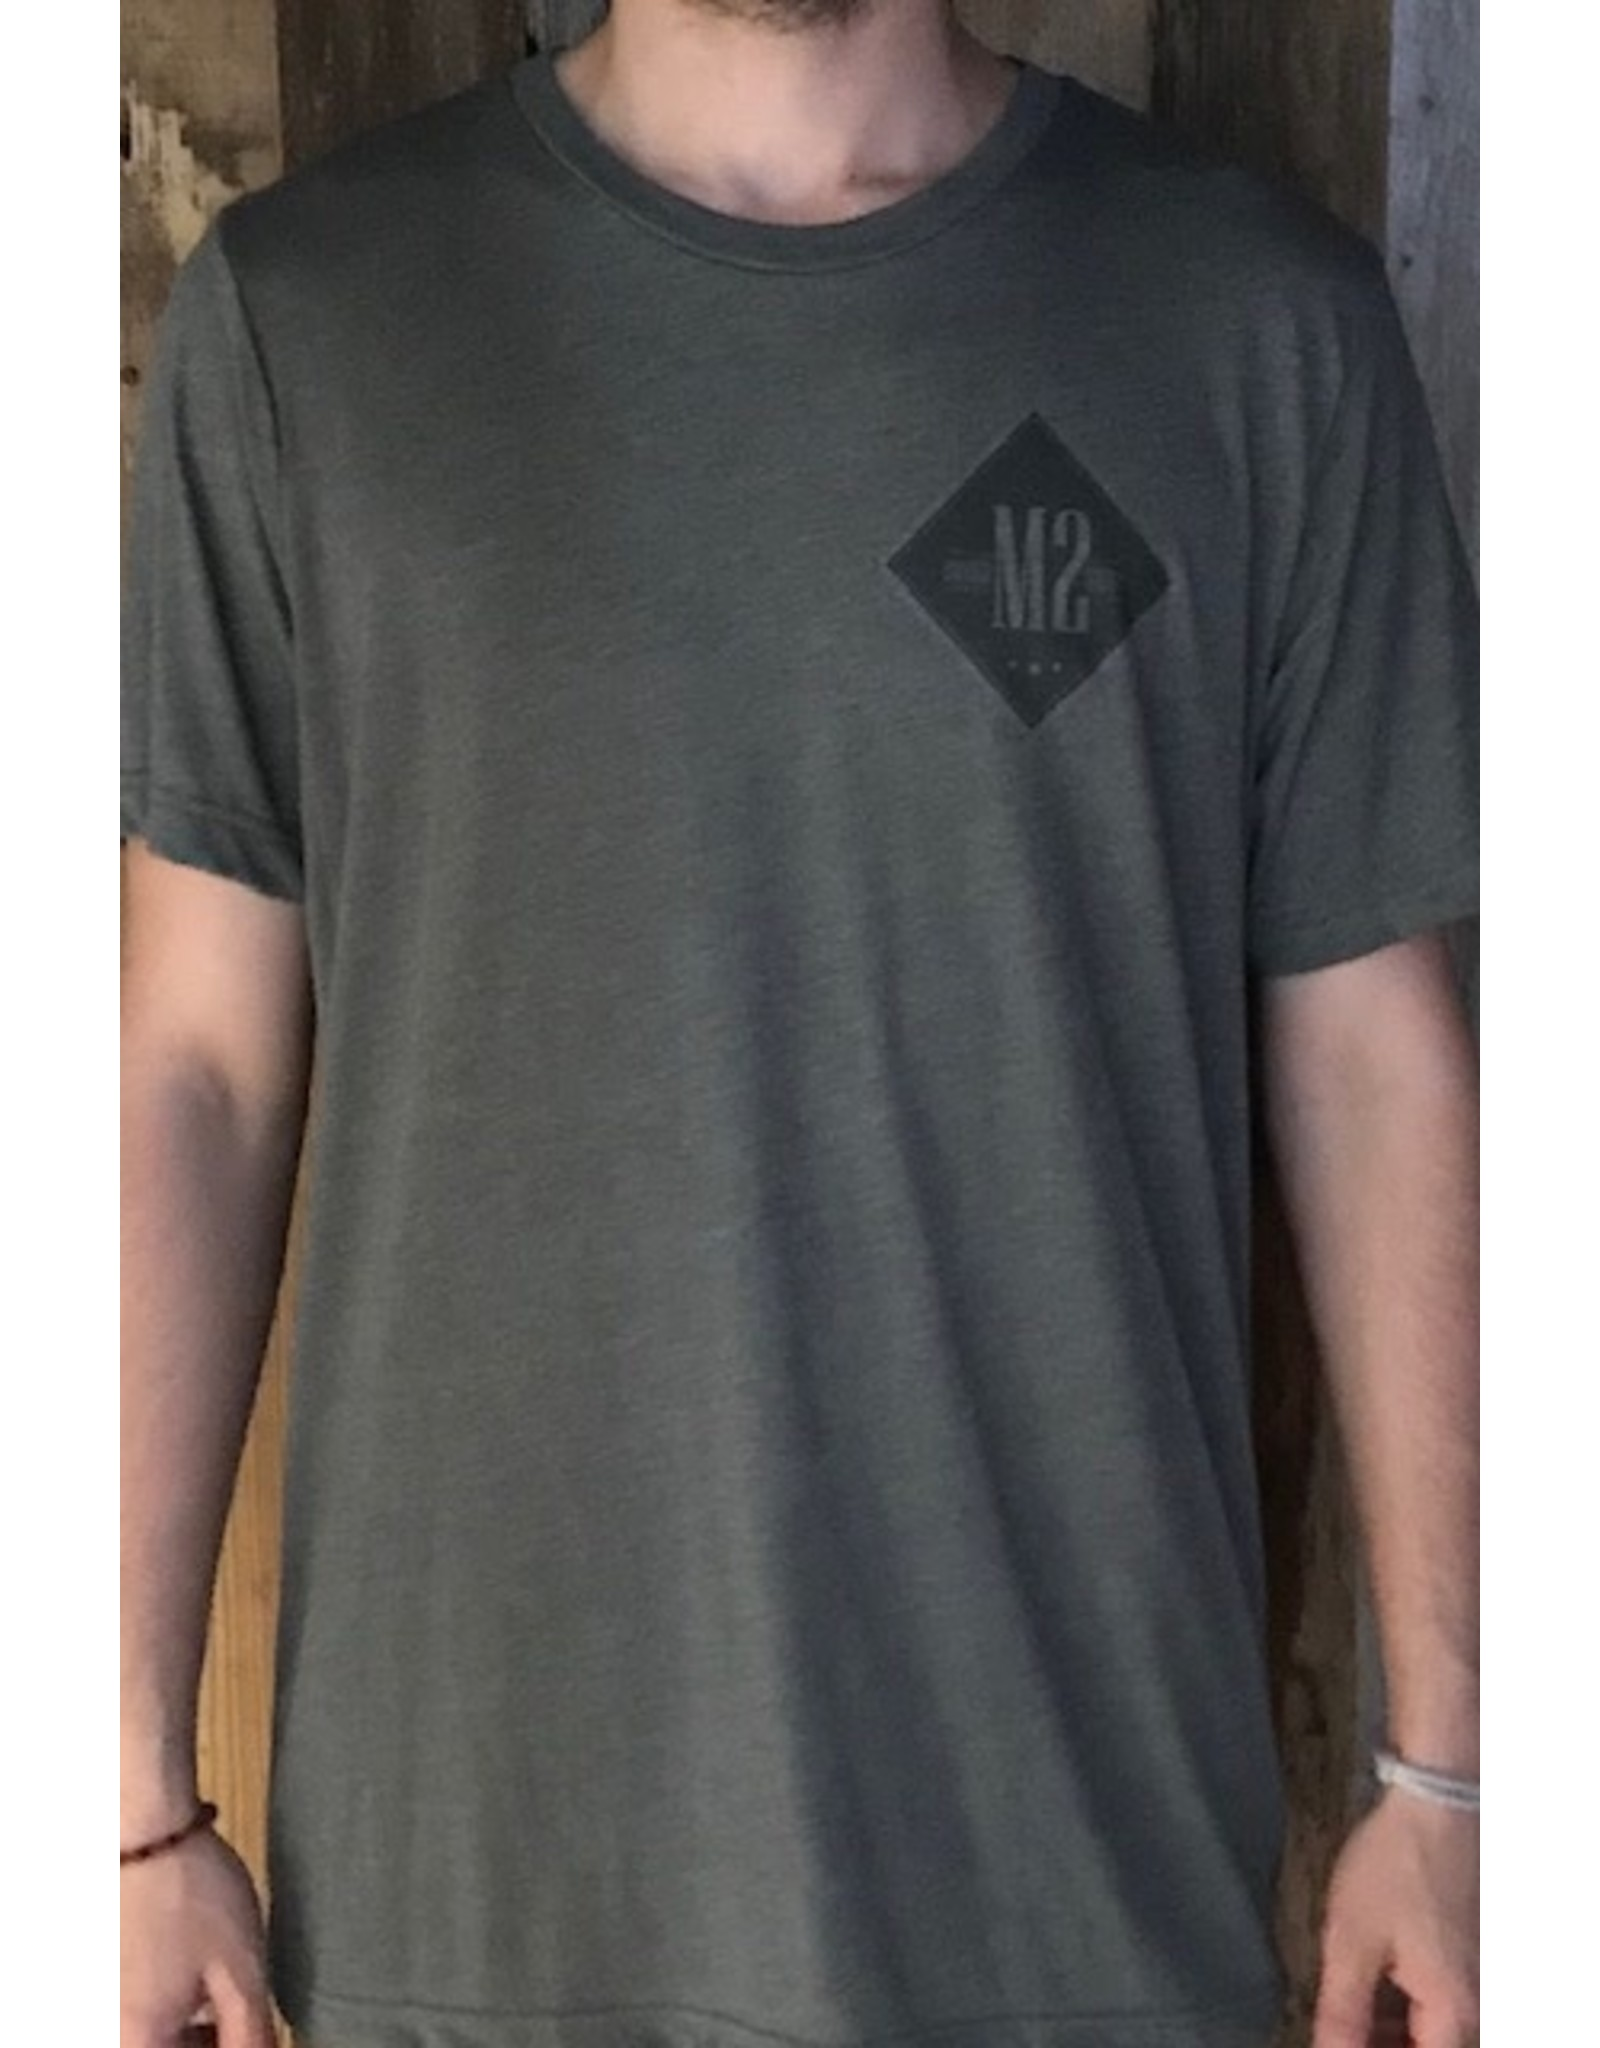 m2 boardshop M2 - t-shirt army